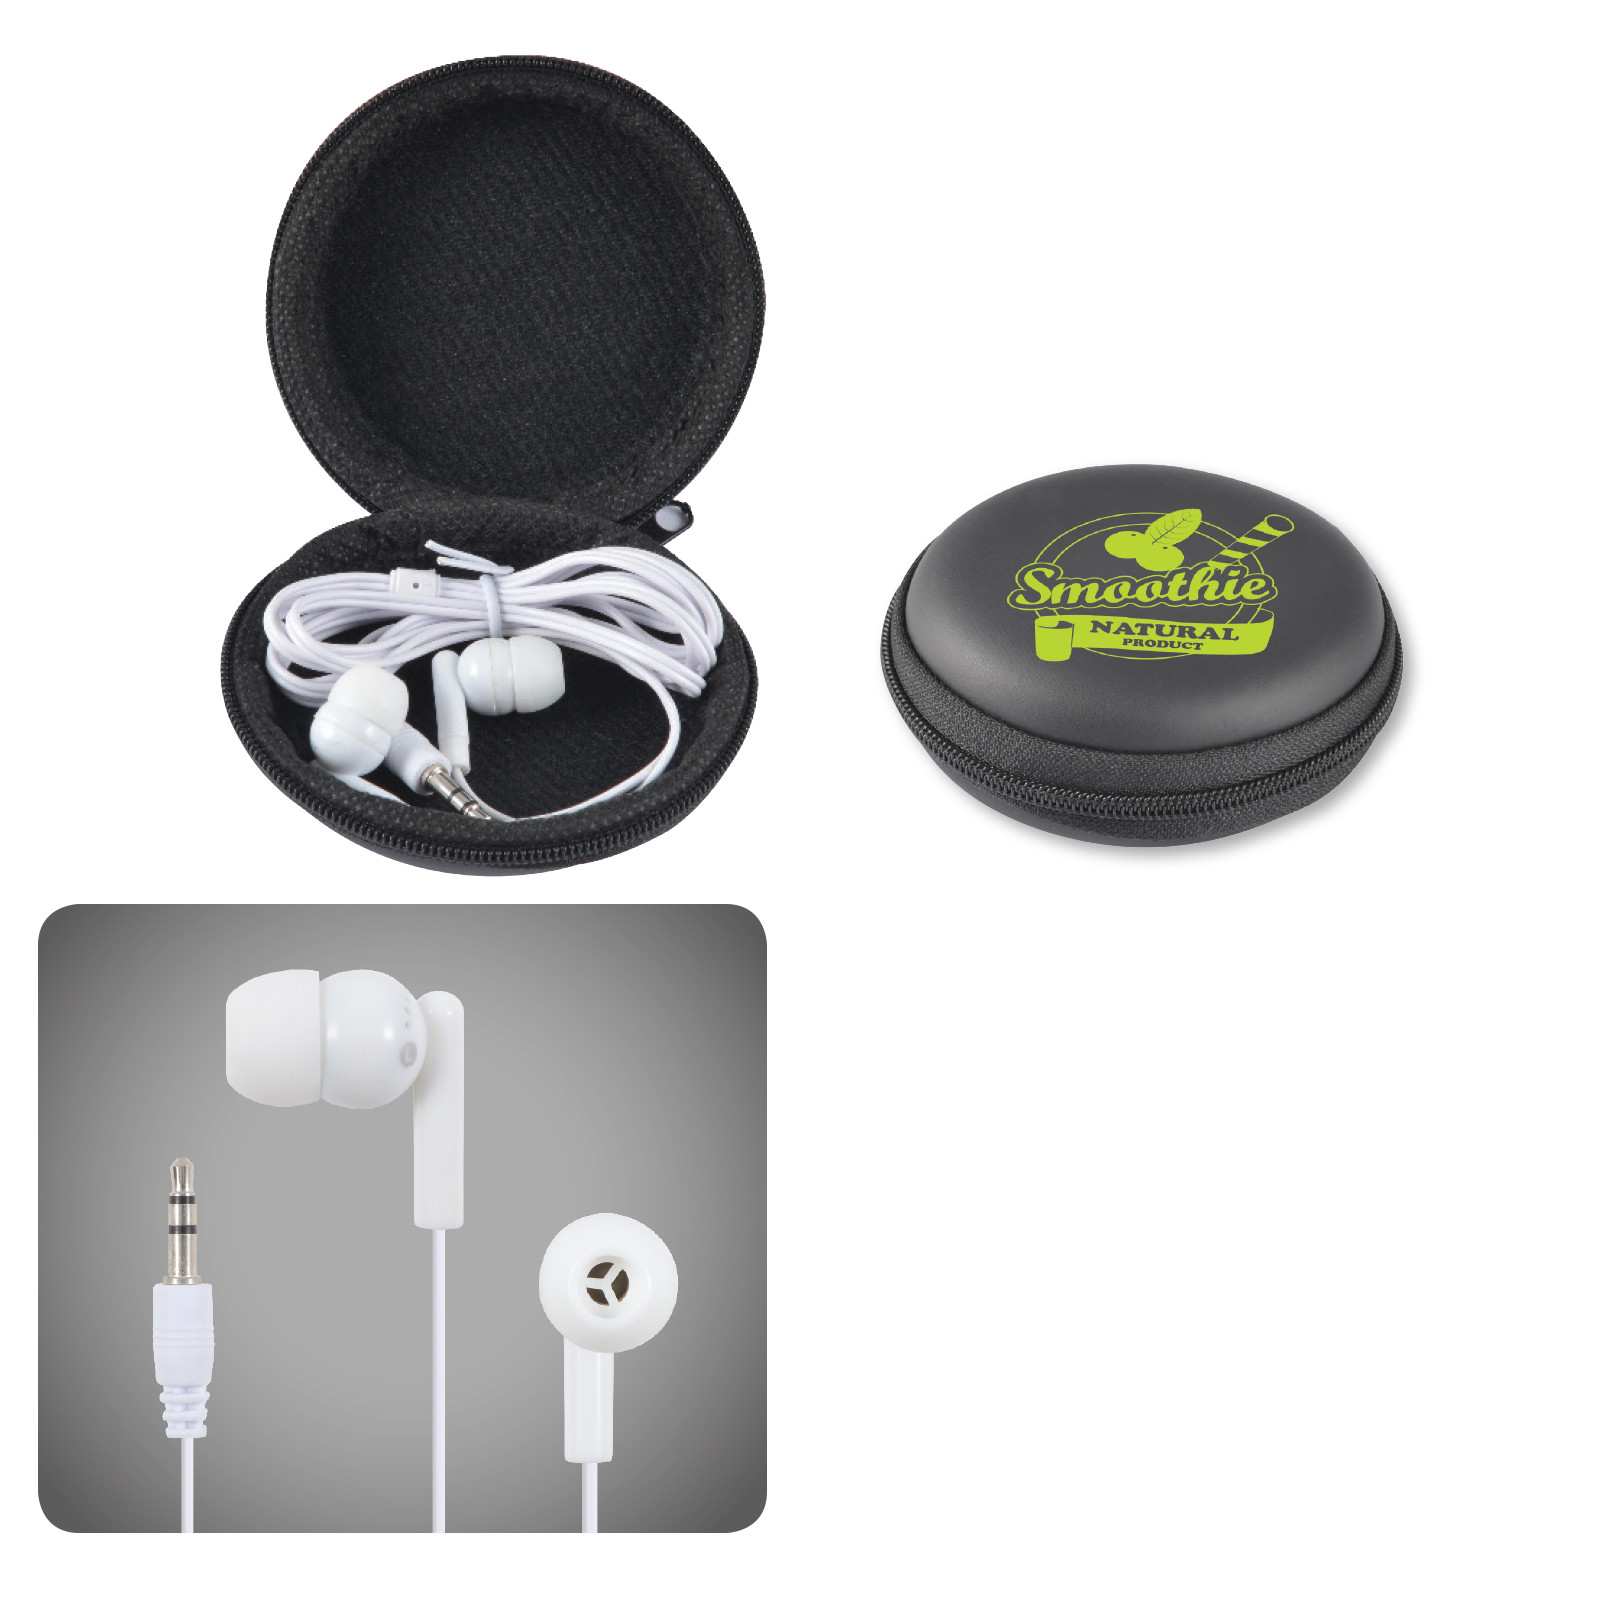 Promotional Product Earbud / Headphone Set in Round EVA Zippered Case